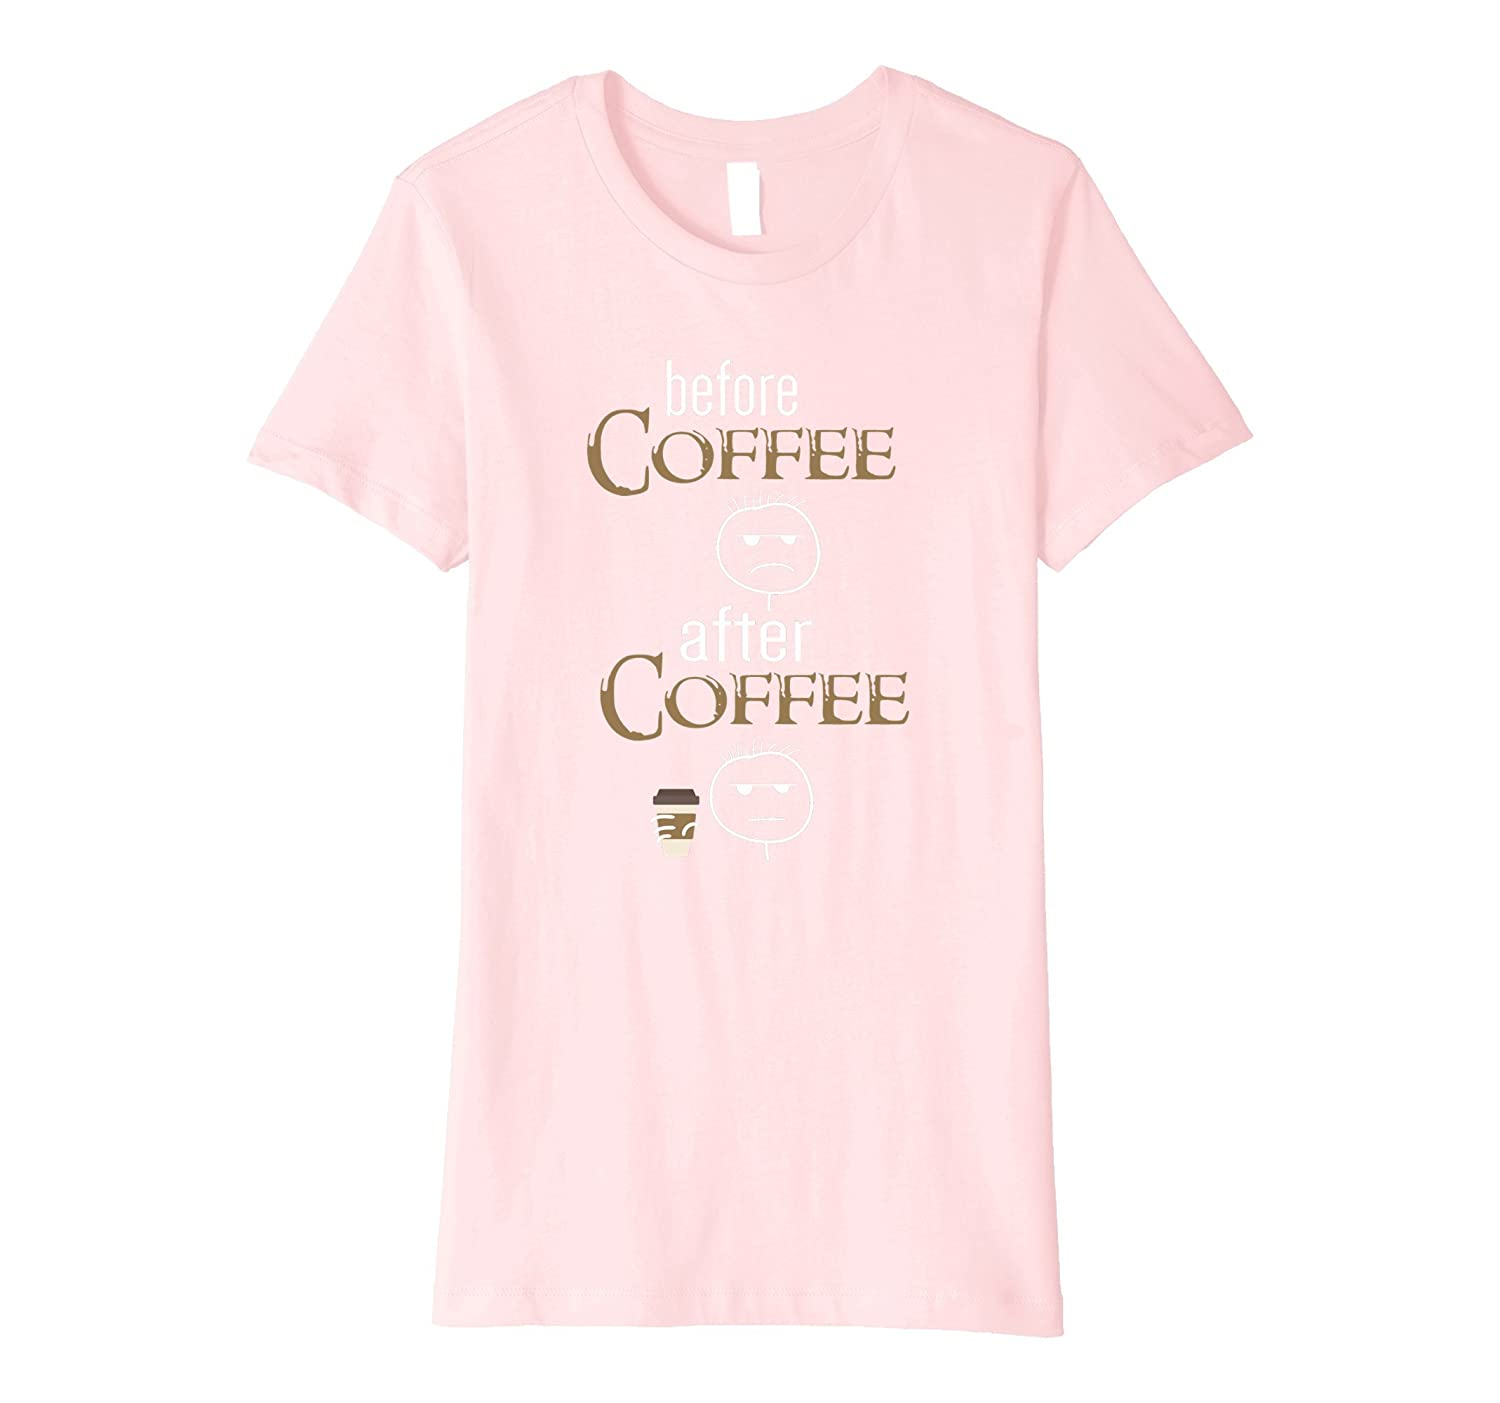 Before Coffee, After Coffee Funny Tee Shirt